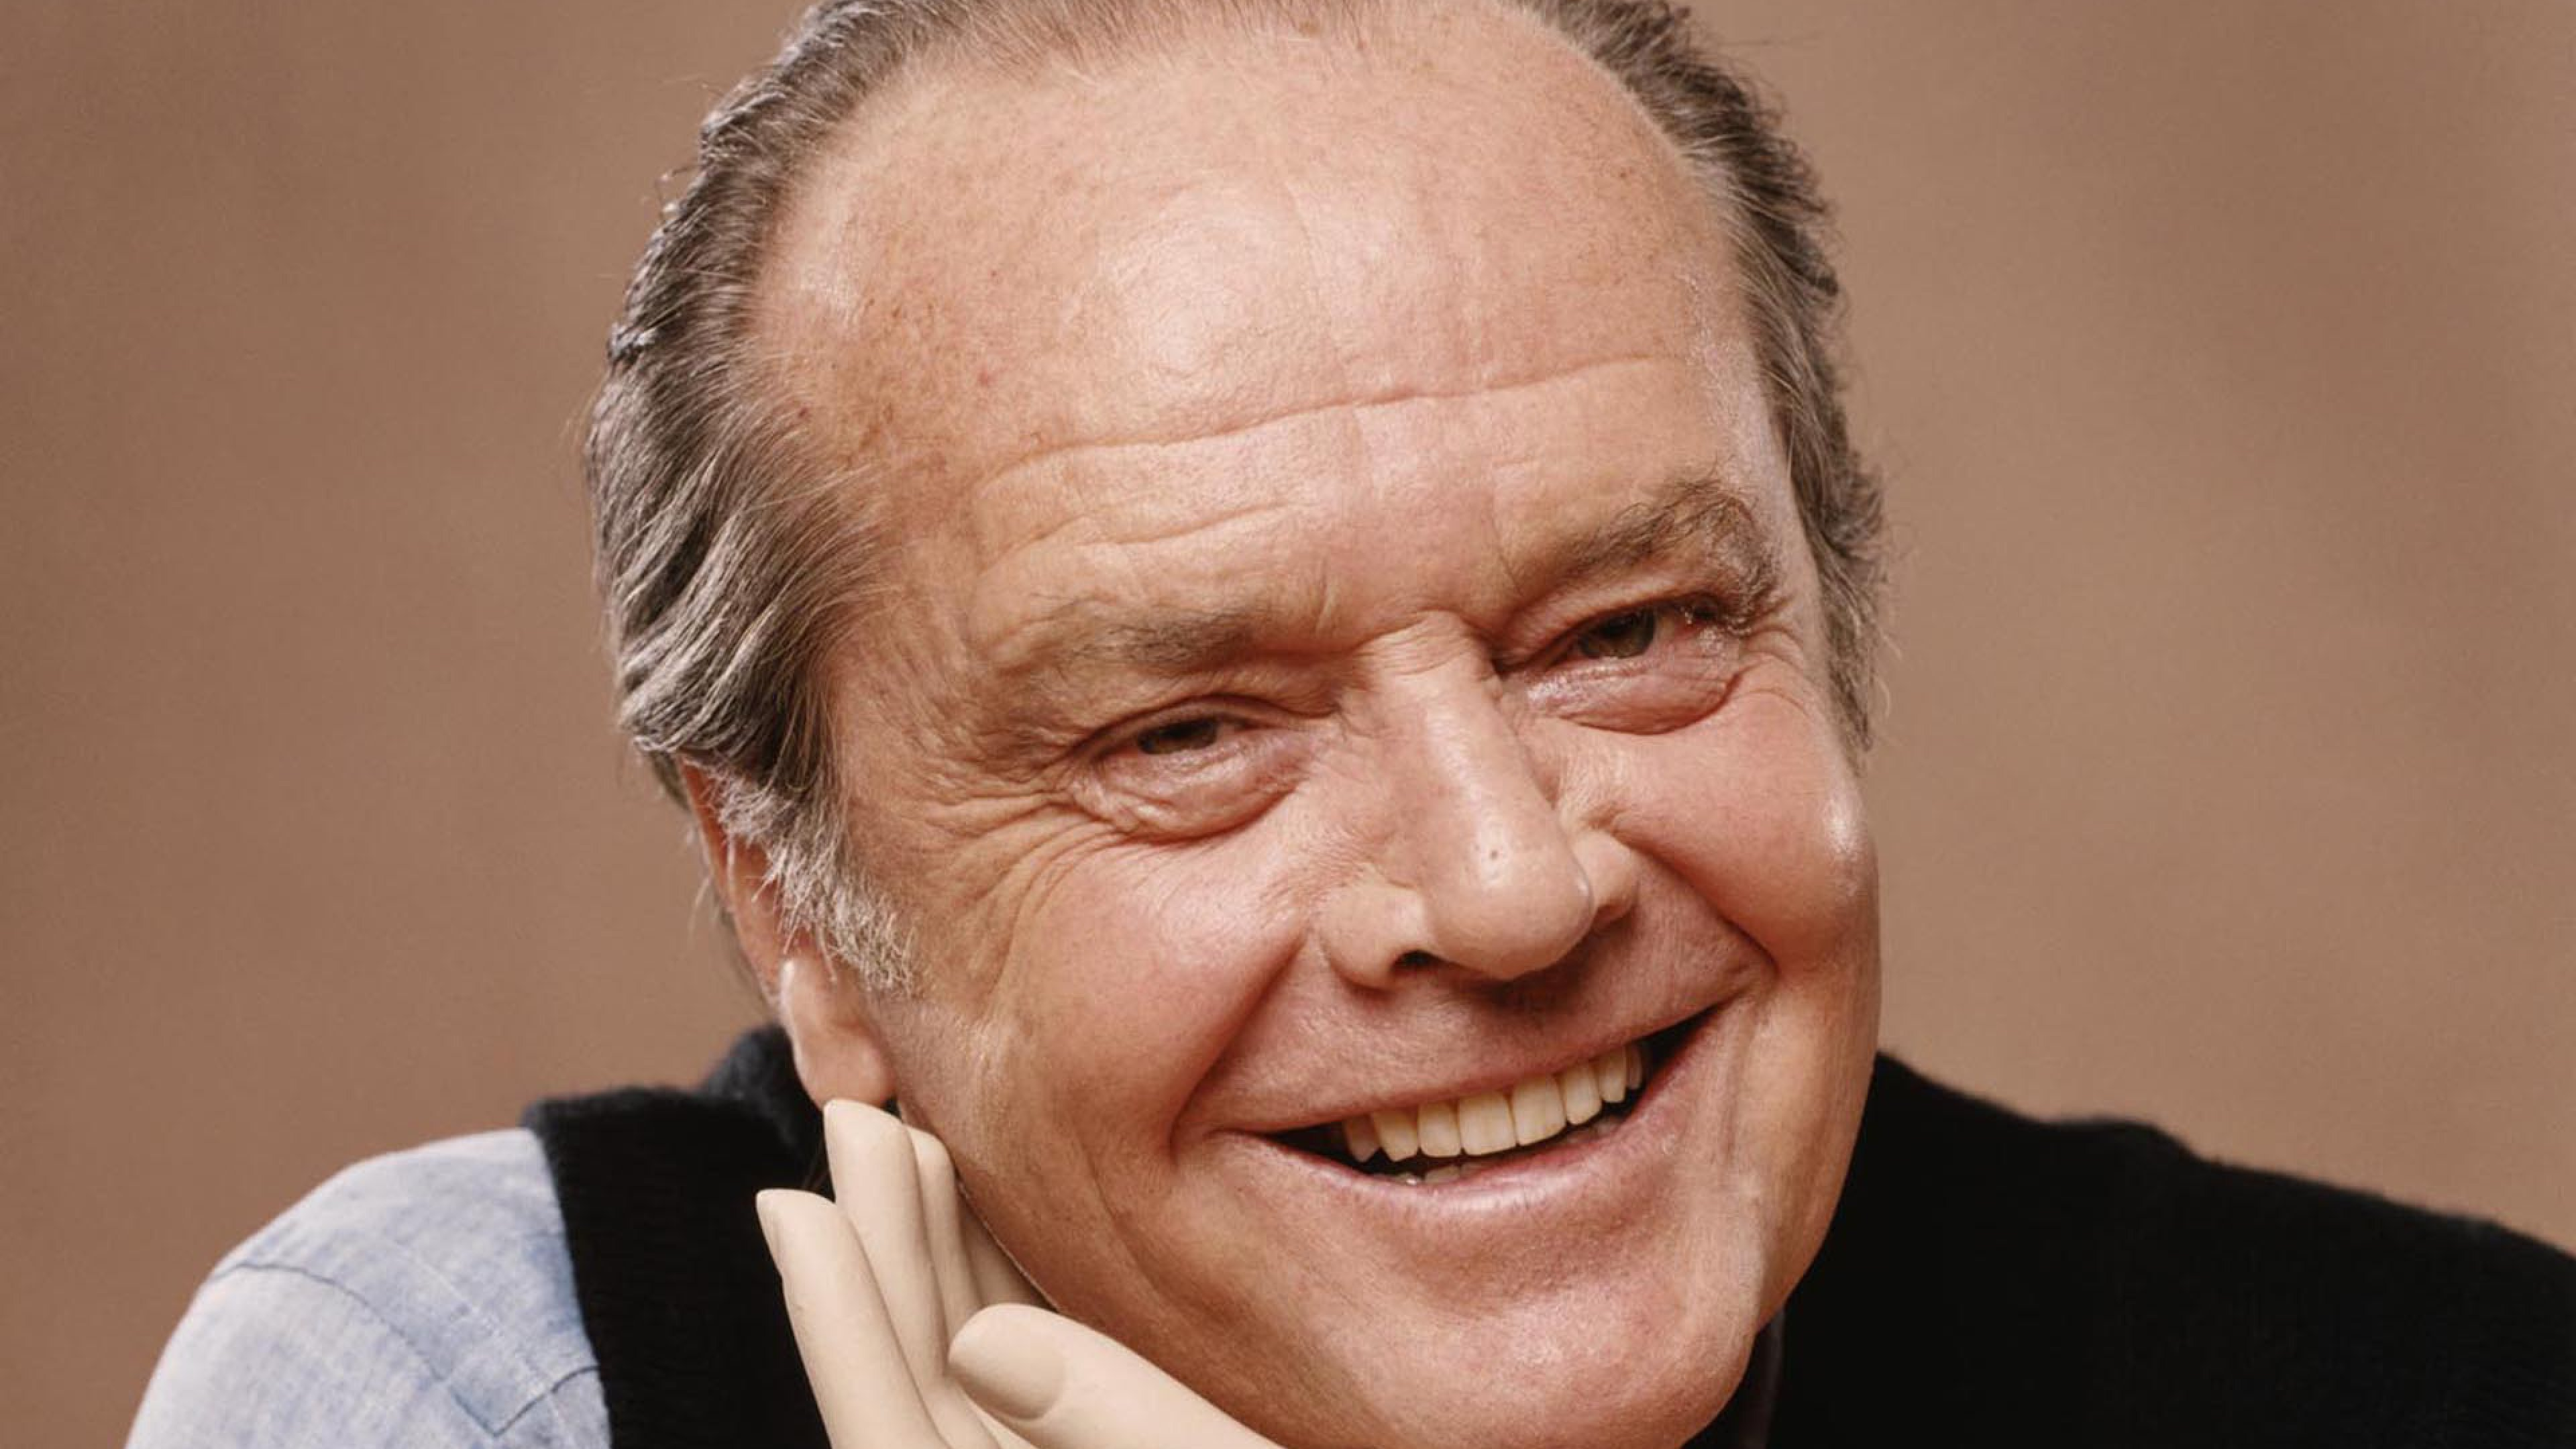 jack nicholson 4k widescreen desktop wallpaper 1320